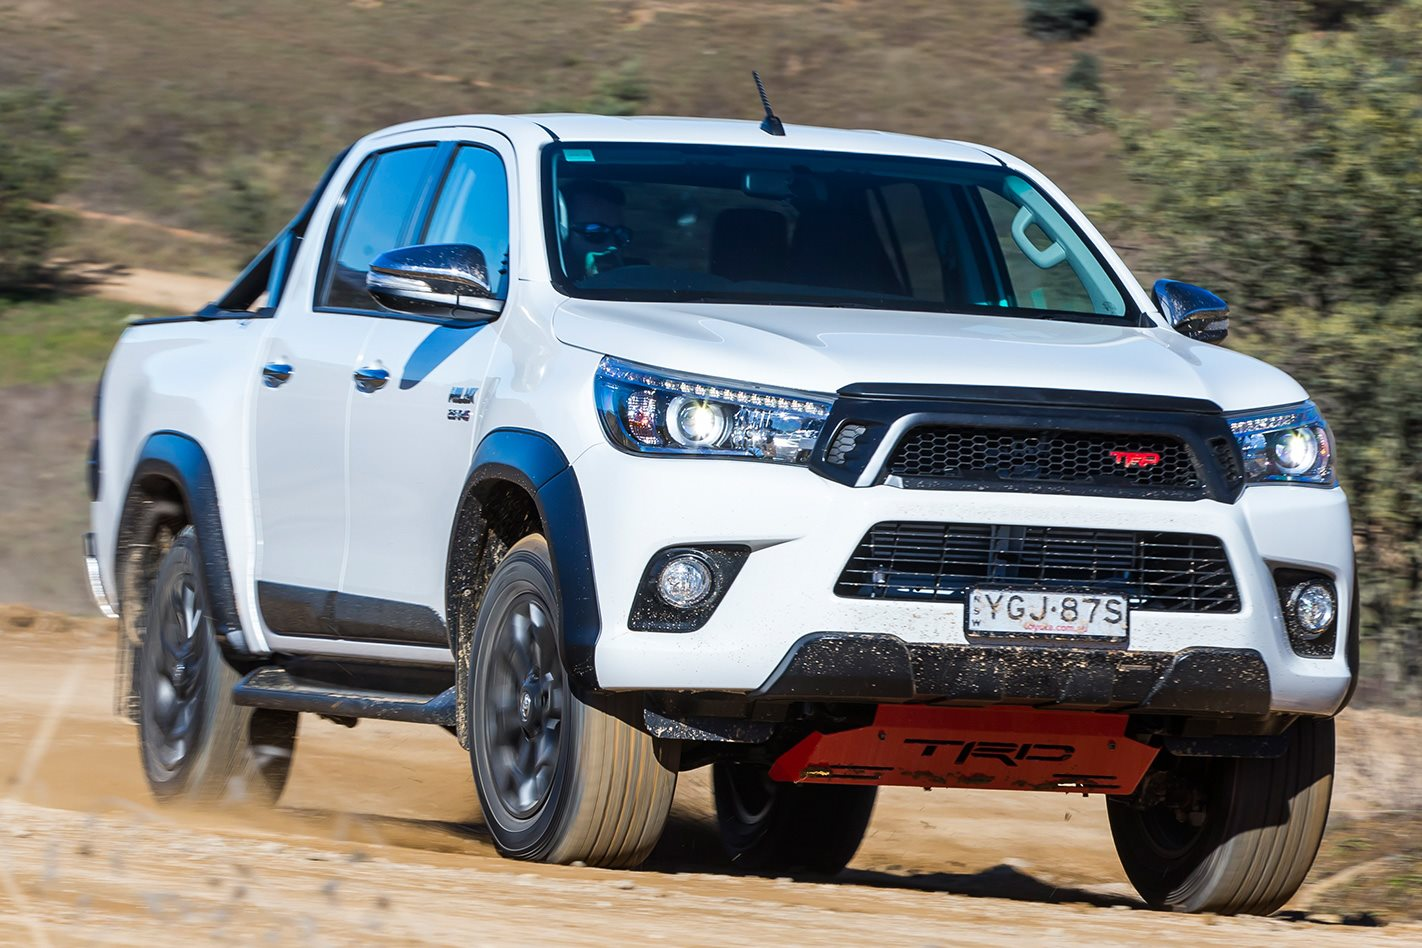 Toyota Hilux TRD front facing